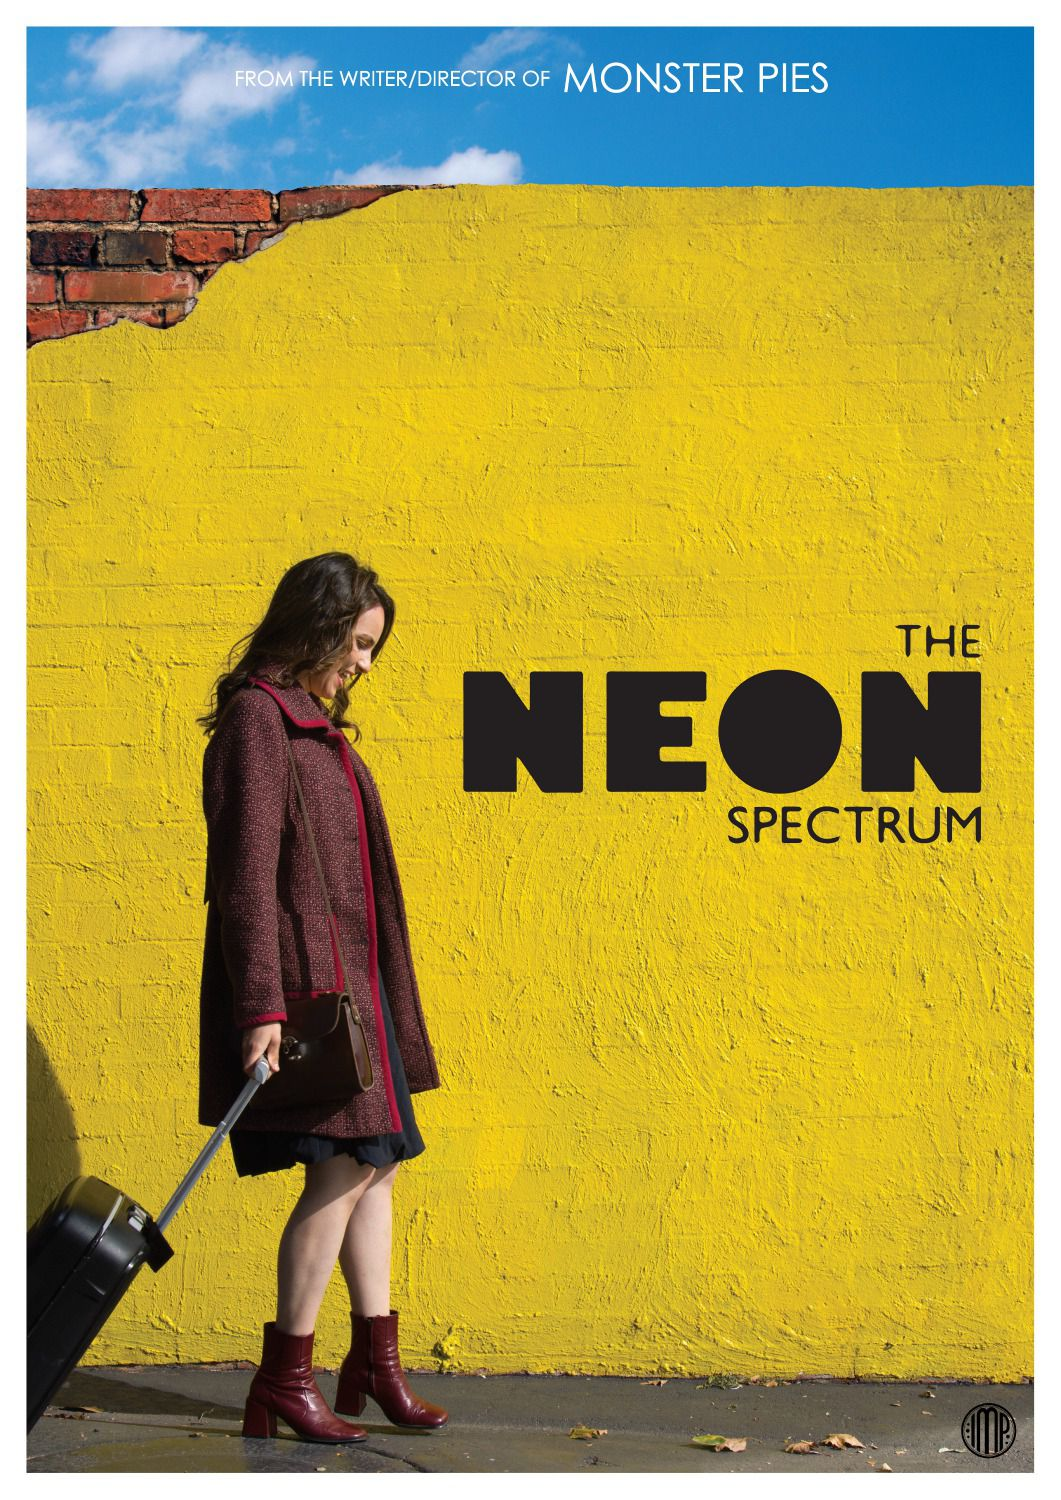 The Neon Spectrum - film poster